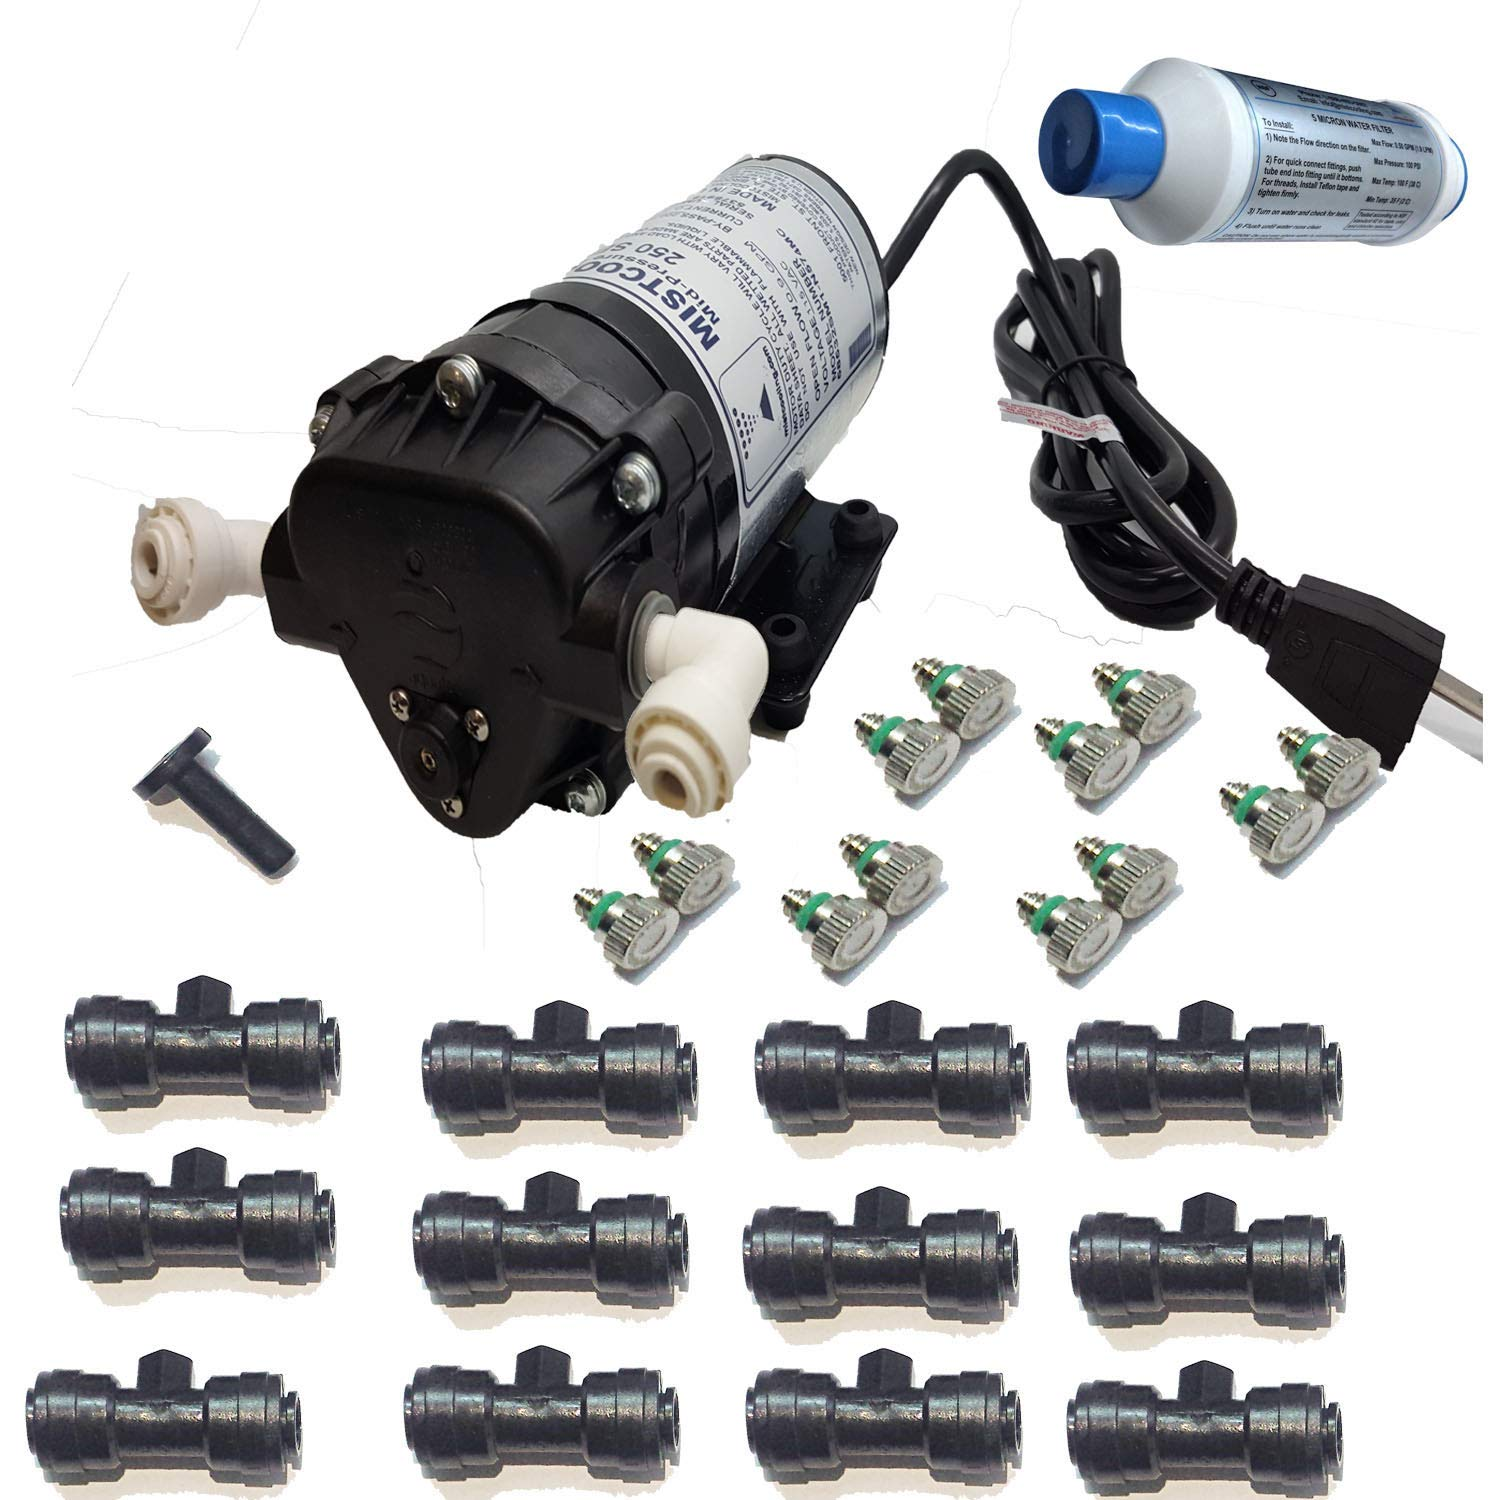 mistcooling Mid Pressure Misting Patio System 160 System-160 PSI-Mid-Pressure-110vac-12 Nozzles Kit-W/Out Enclosure, Black Color Tubing - UV Treated Nylon by mistcooling